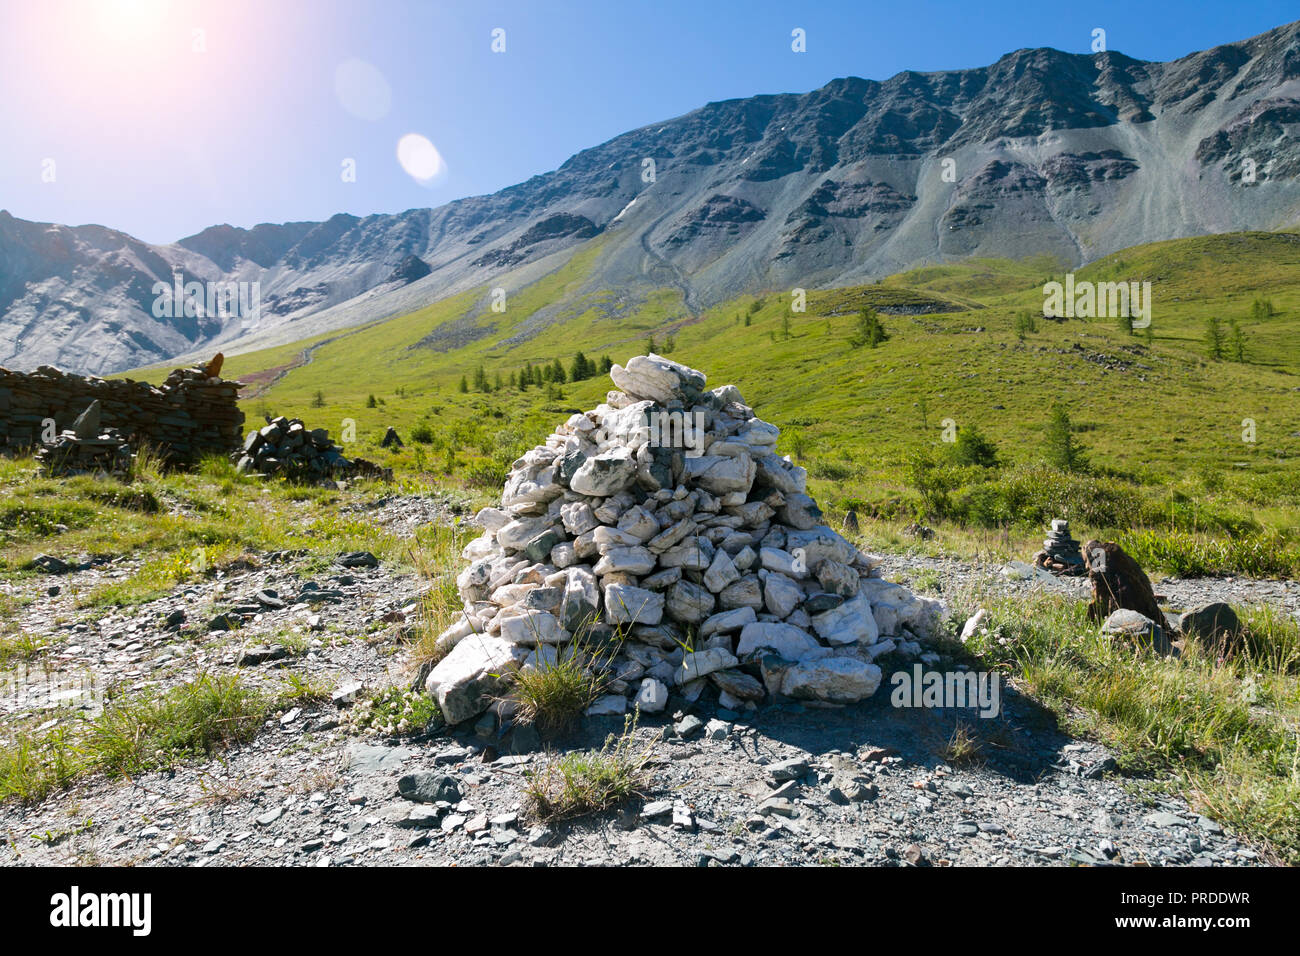 Marble stones are built up by a mountain, a sacred place of worship of pagans. - Stock Image